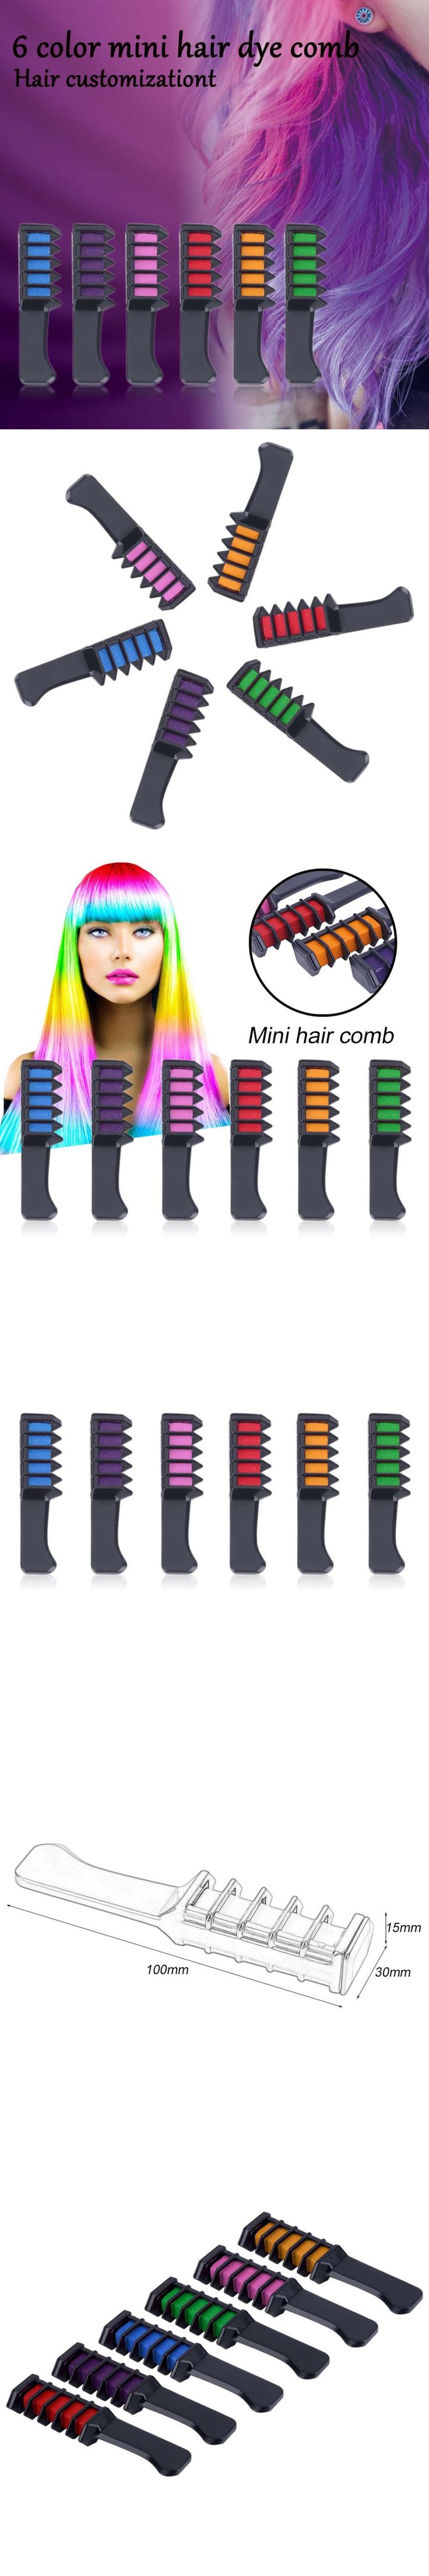 Mini Disposable Personal Salon Use Hair Dye Comb Professional Crayons For Hair Color Chalk Hair Dyeing Tool